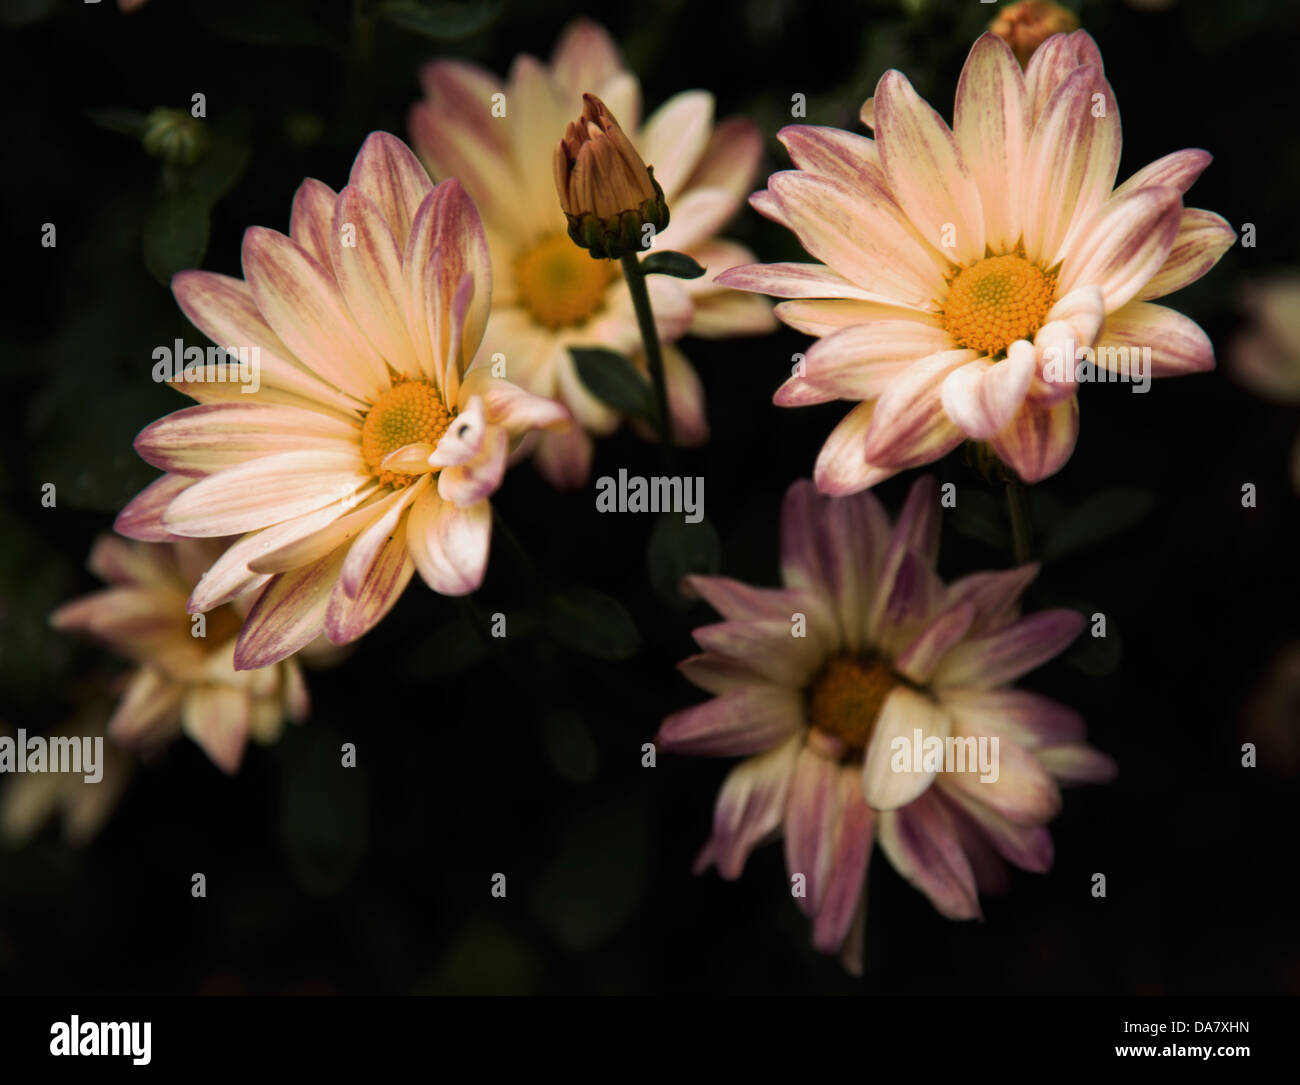 Beutiful beutiful stock photos & beutiful stock images - alamy